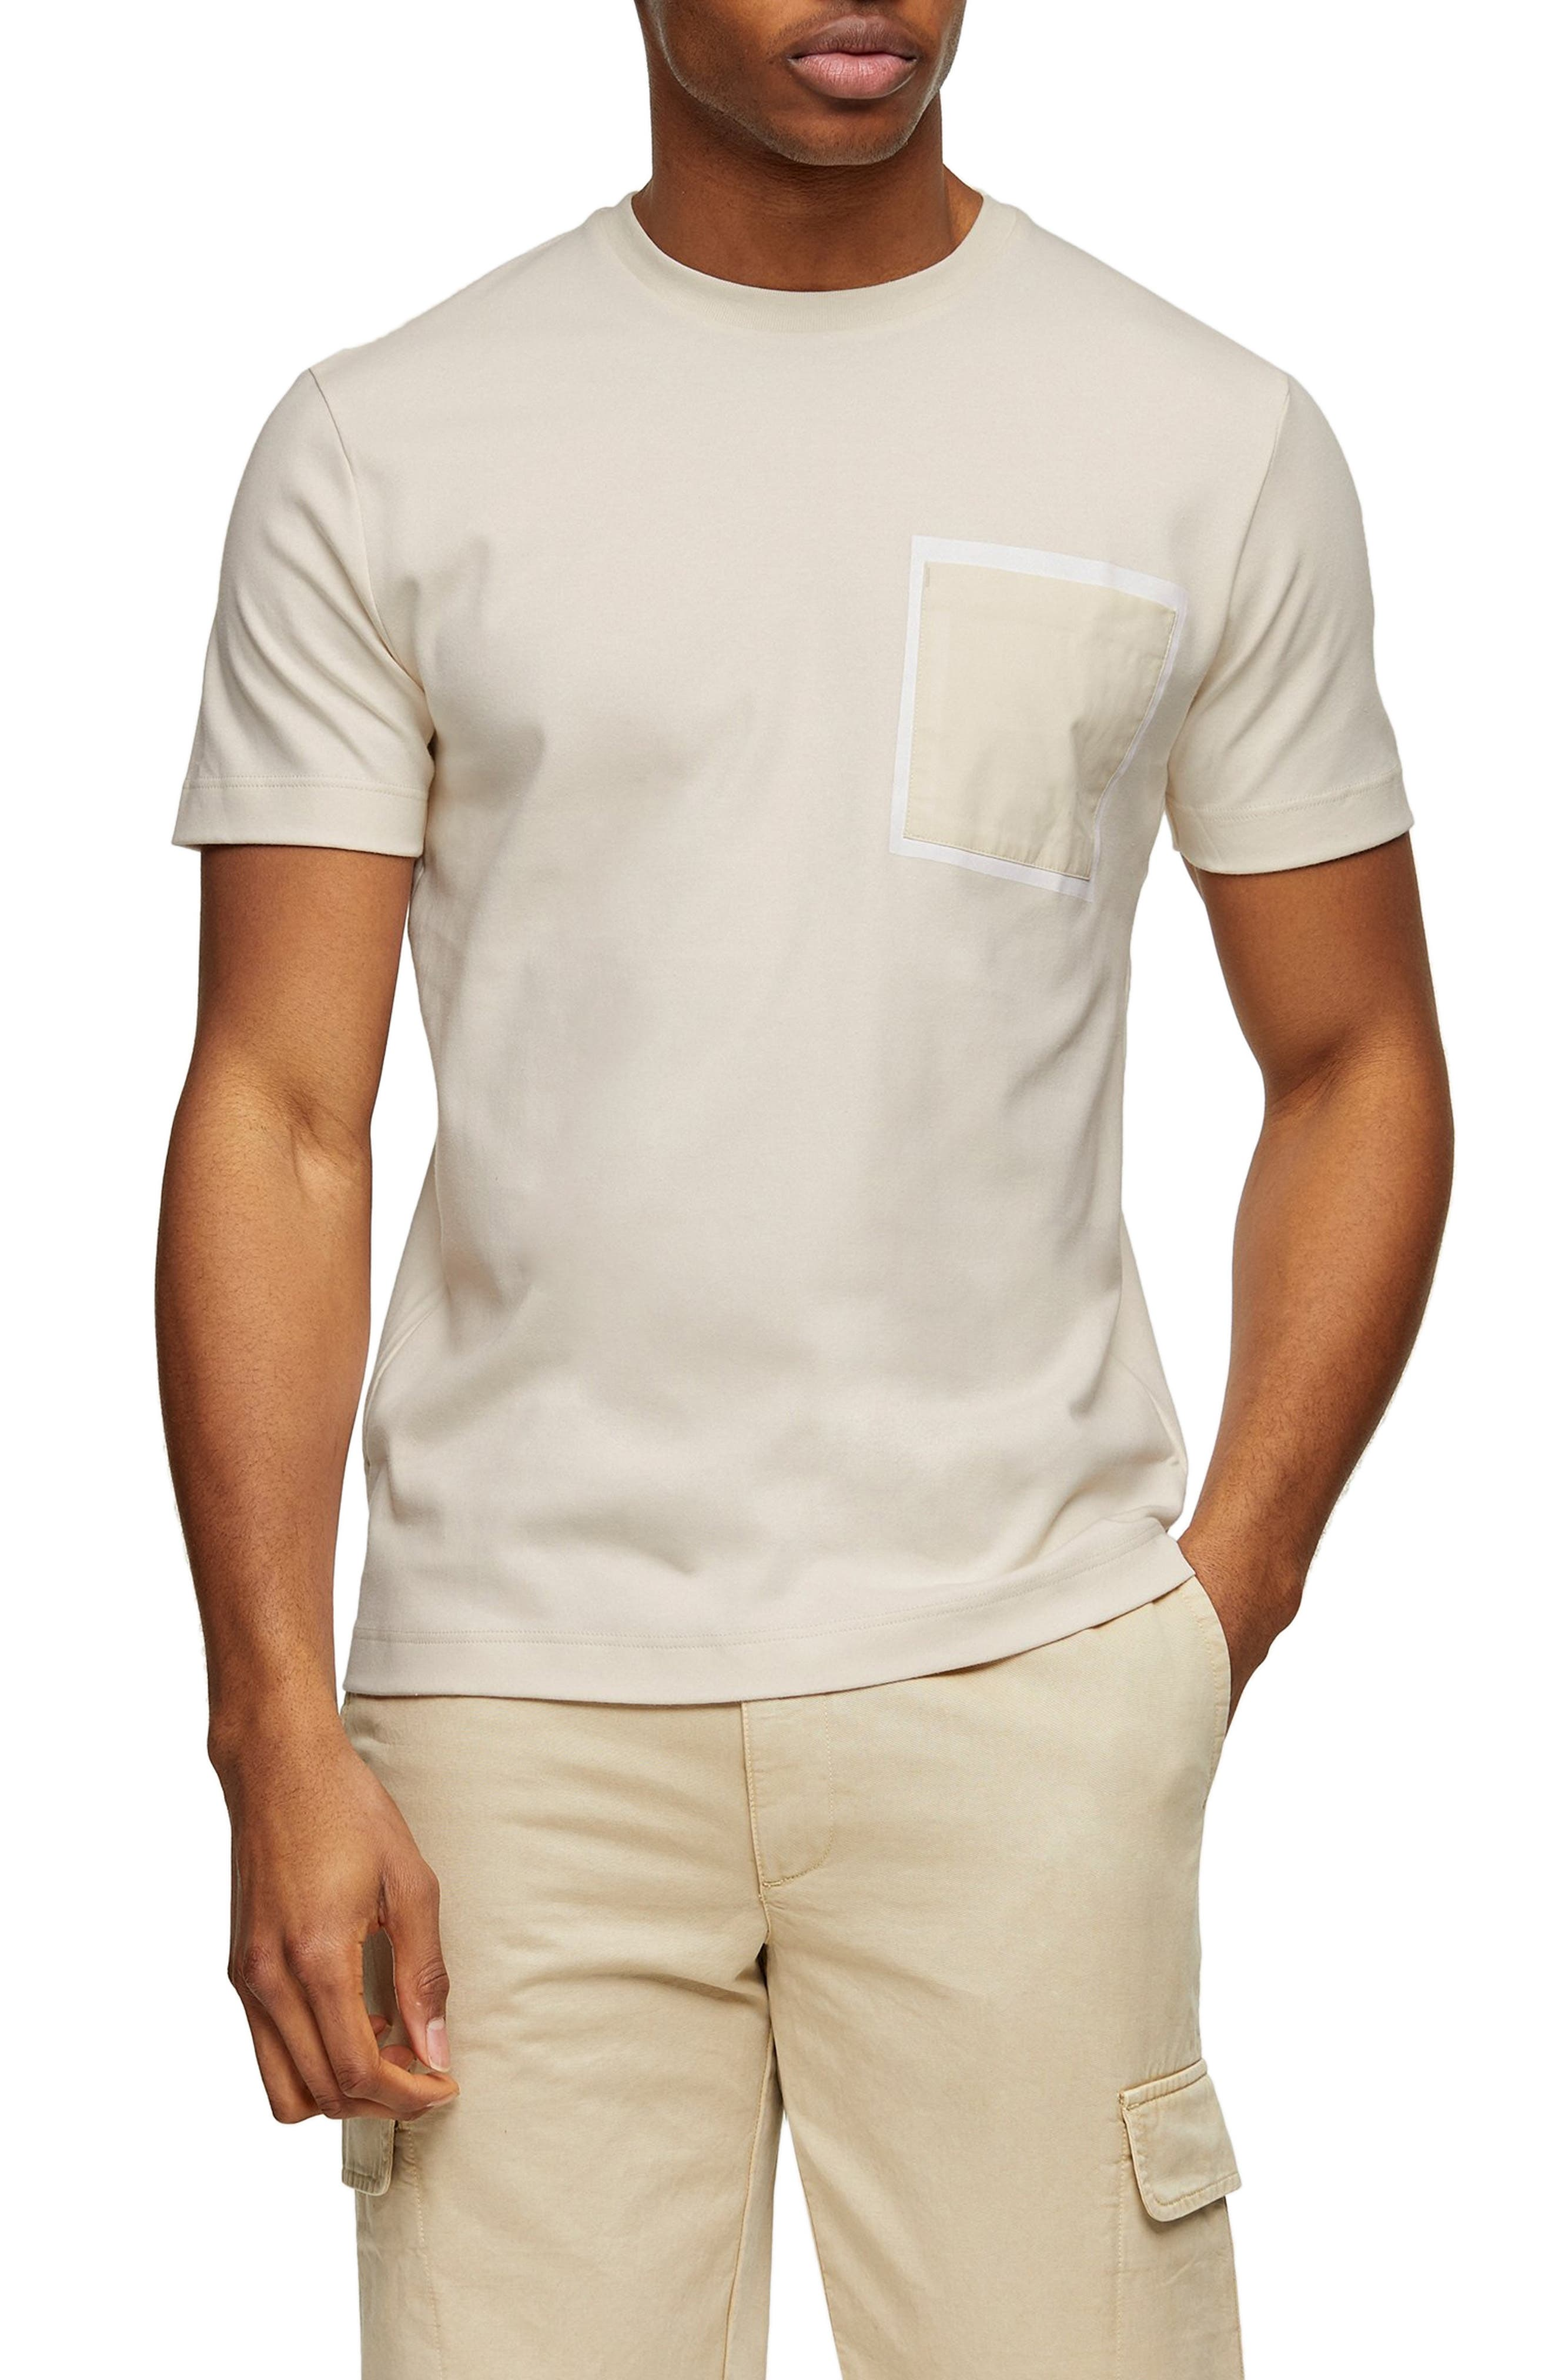 A glossy frame spotlights the chest pocket of a T-shirt made in a comfortable fit from soft, breathable cotton. Style Name: Topman Bonded Pocket T-Shirt. Style Number: 6032523. Available in stores.